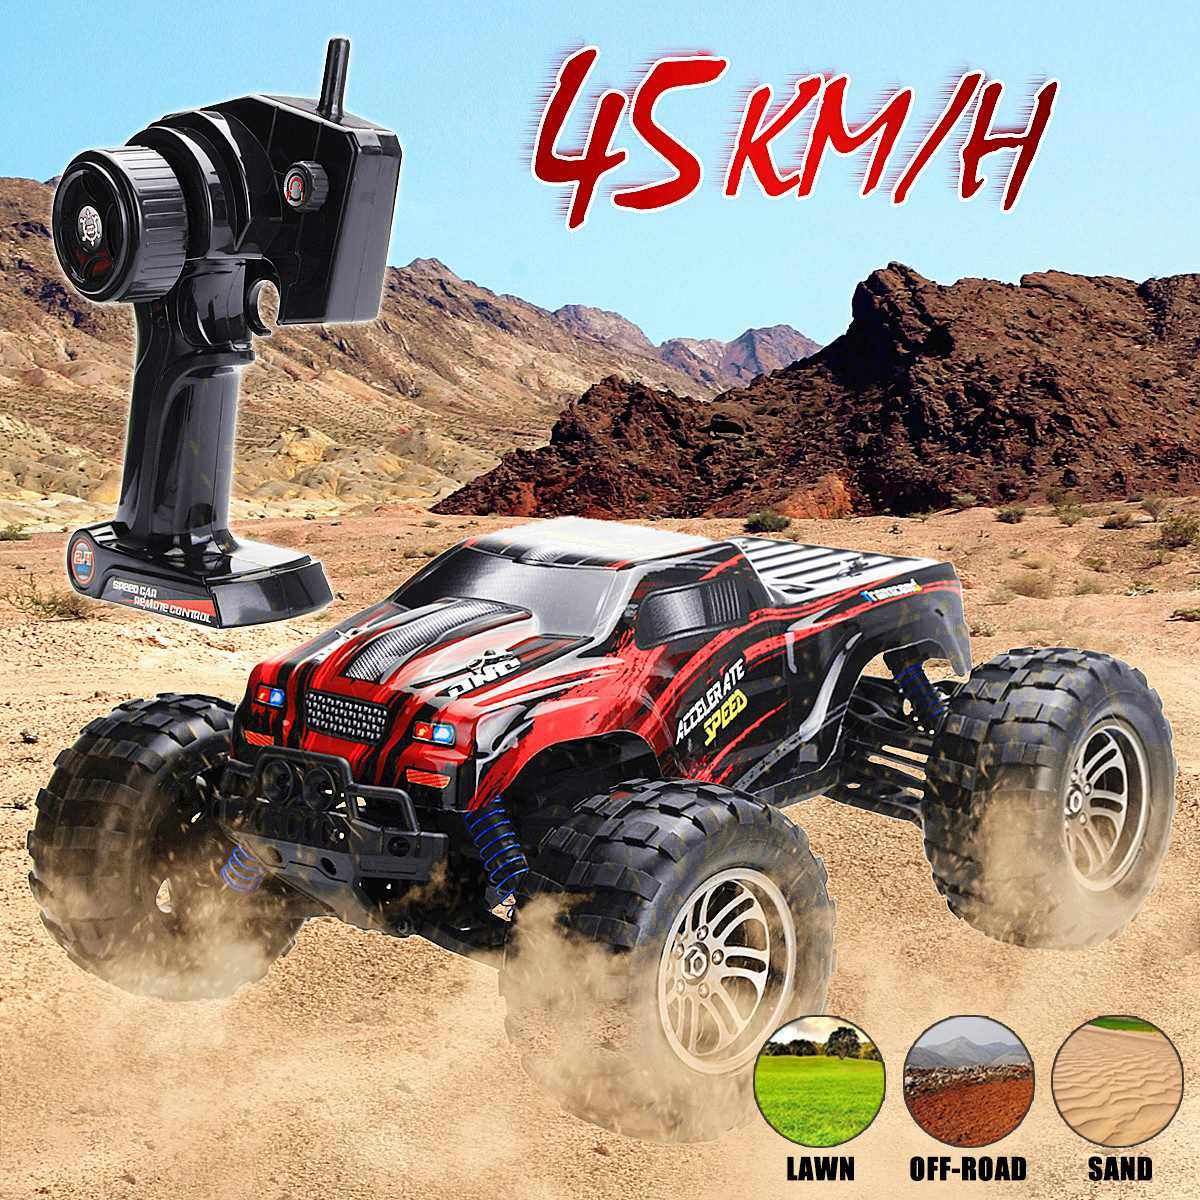 Remote Control 4WD Off-Road Monster Truck High Speed RTR RC Car Drift Field Buggy Toy 1:12 2.4GRemote Control 4WD Off-Road Monster Truck High Speed RTR RC Car Drift Field Buggy Toy 1:12 2.4G